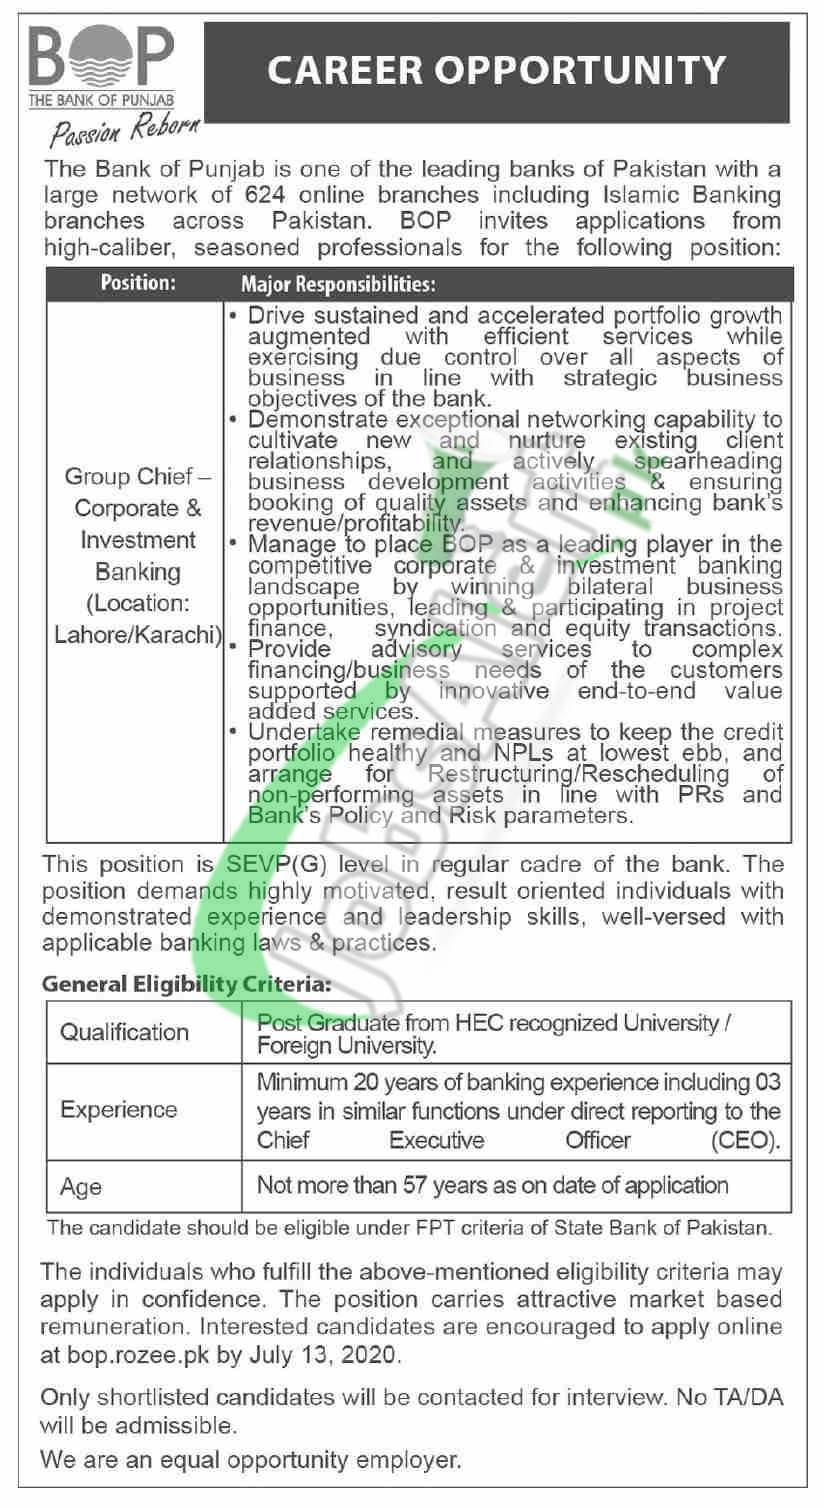 Group Chief - Corporate & Investment Banking Jobs